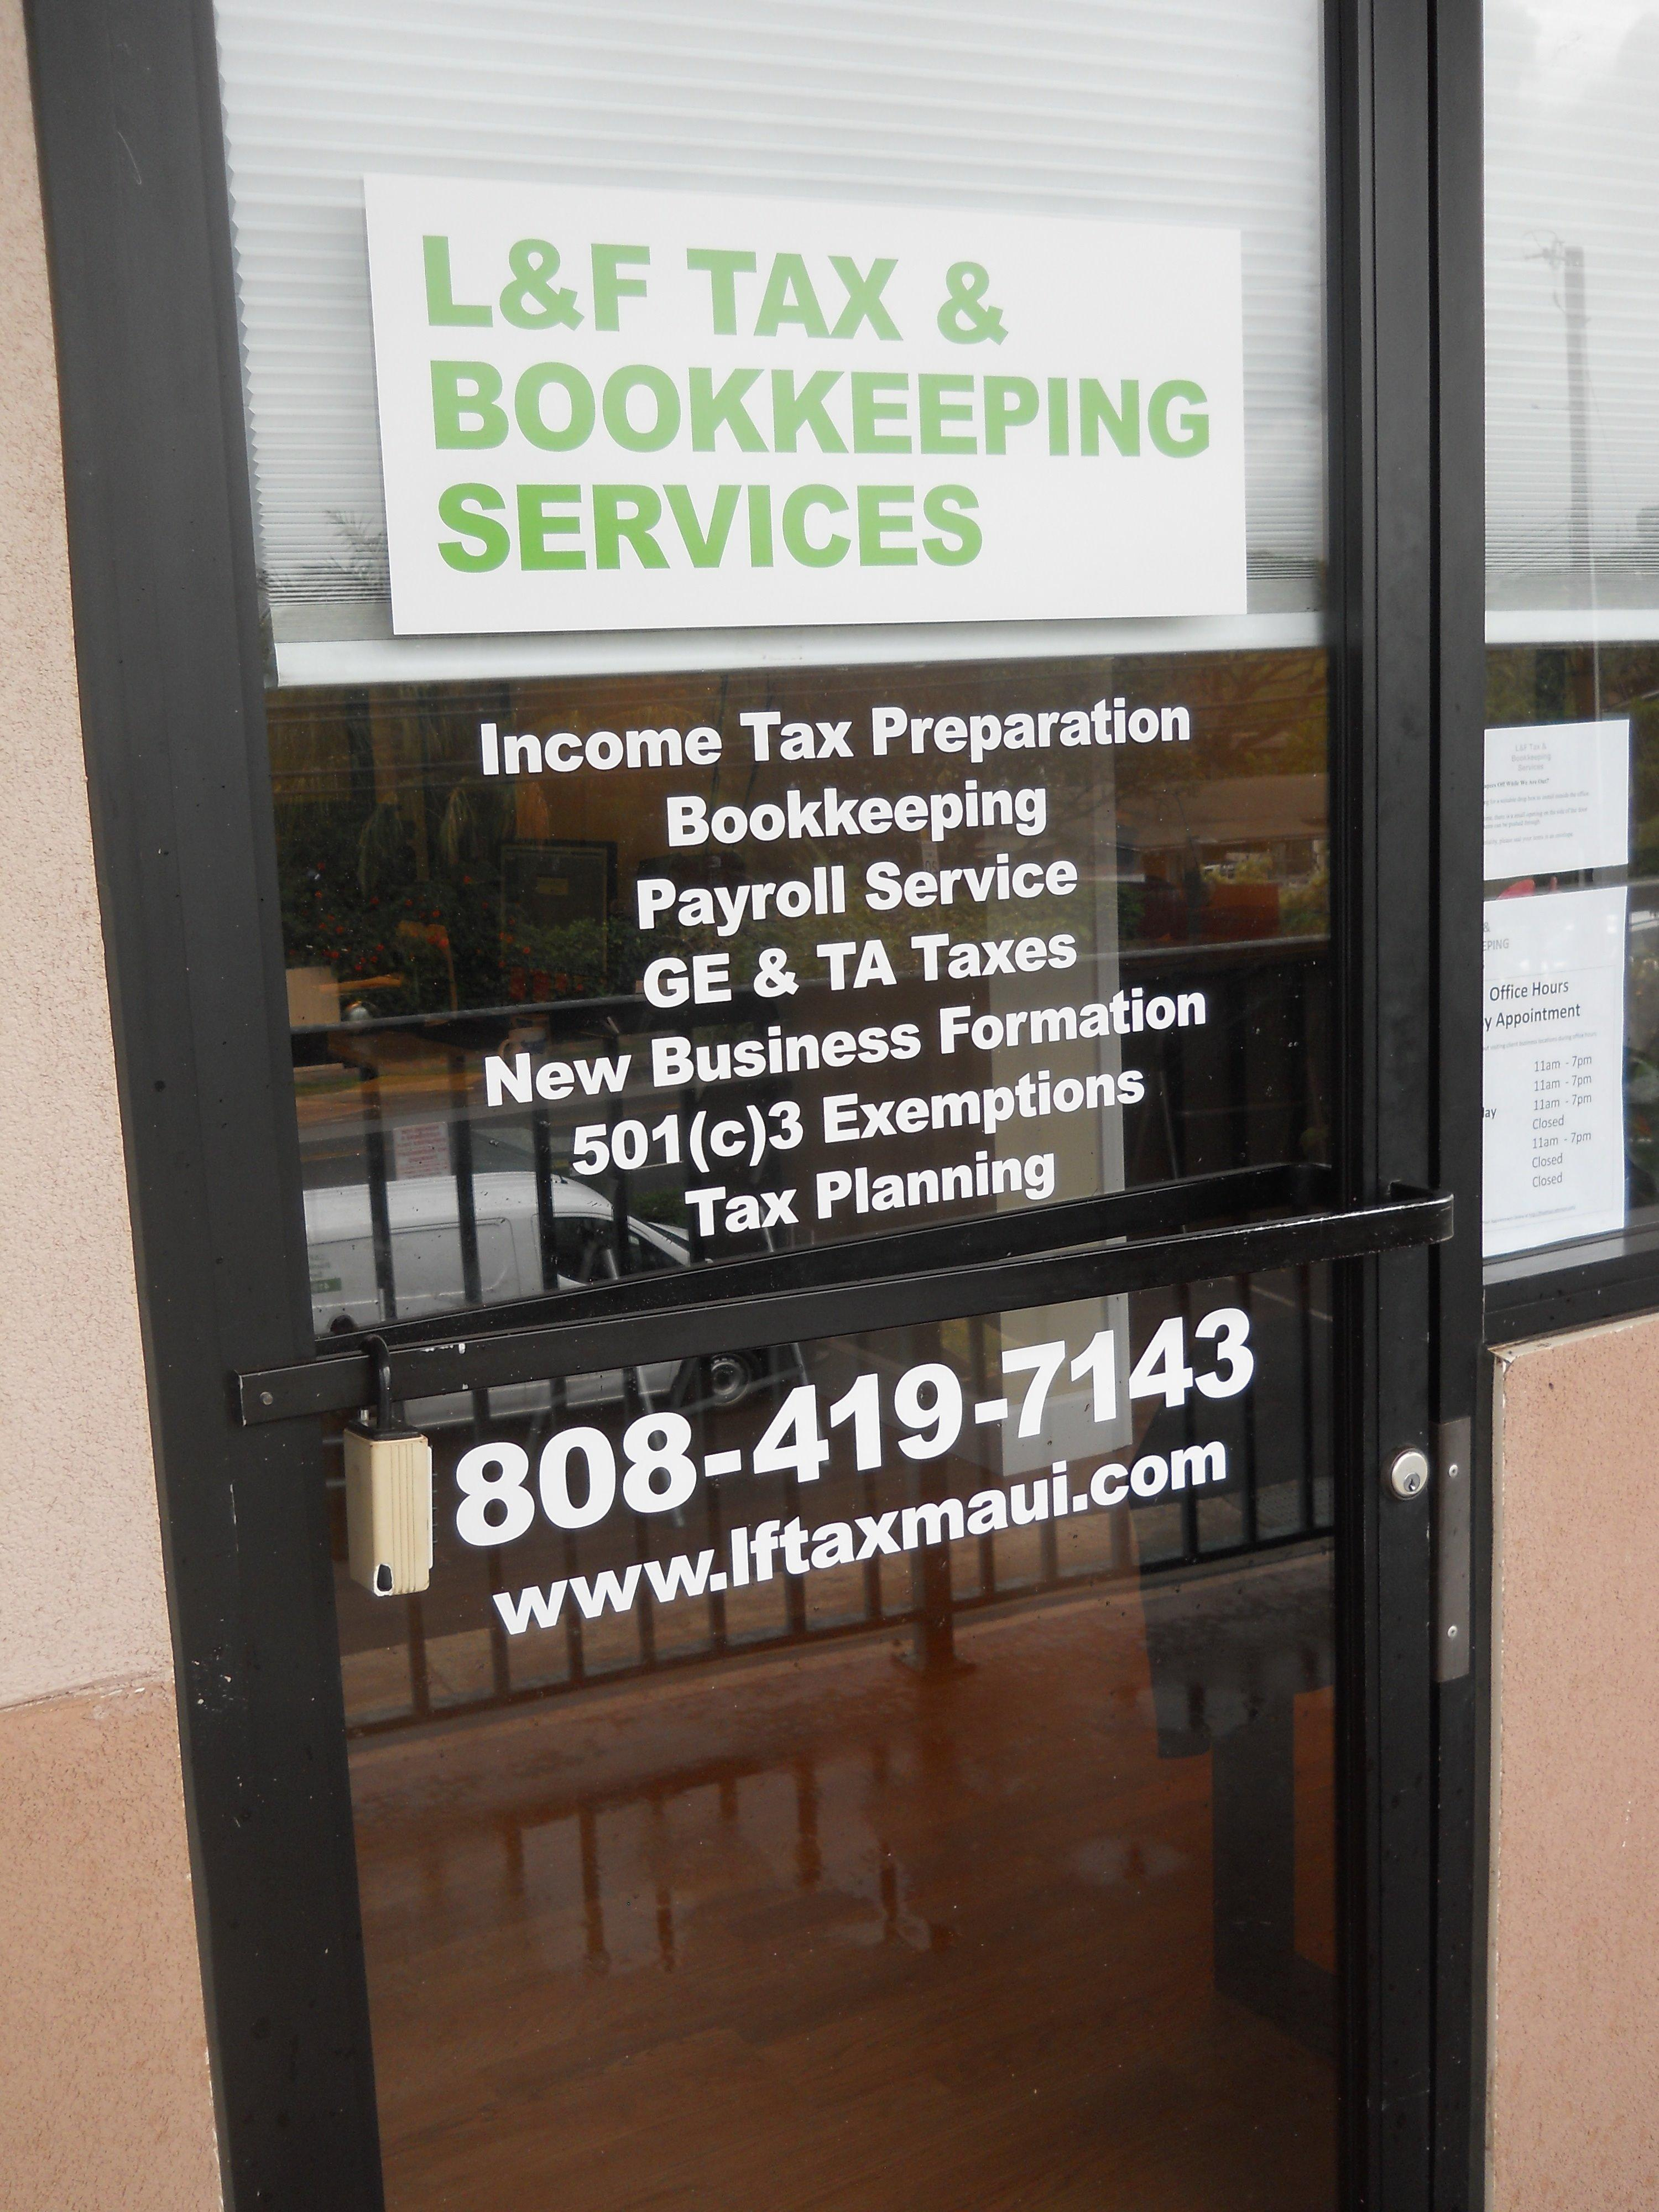 L&F Tax & Bookkeeping Services image 0